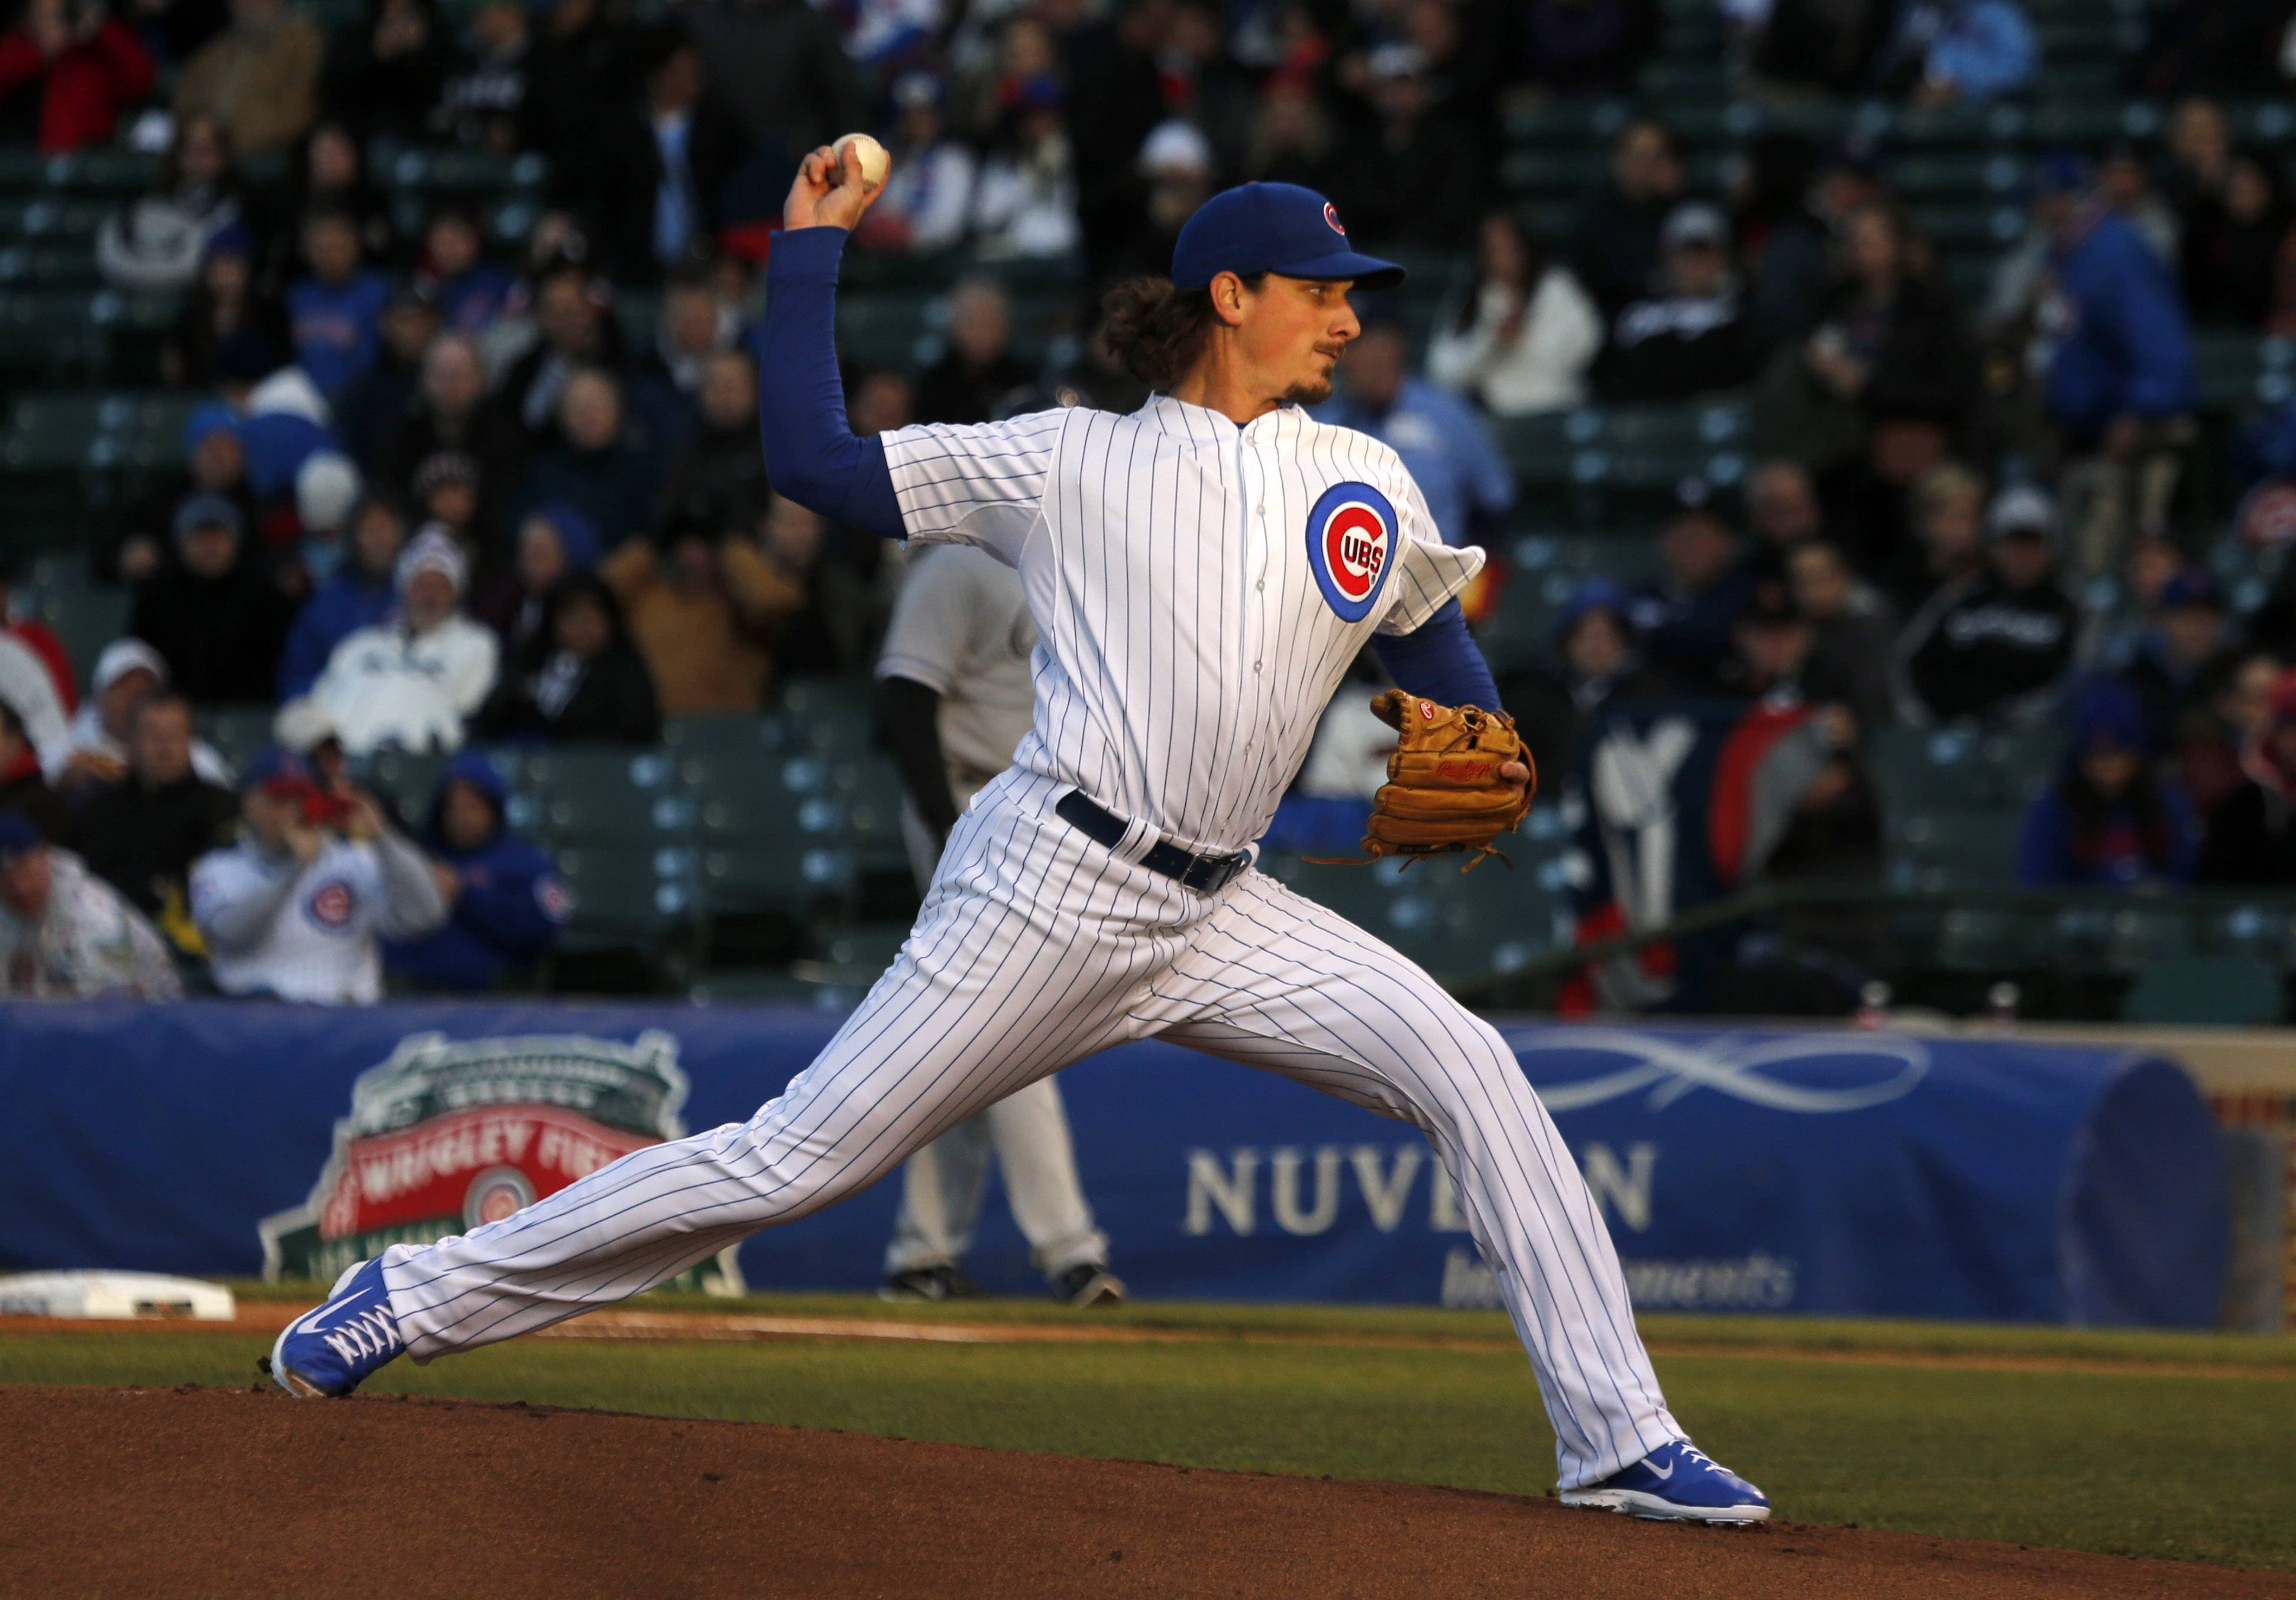 Cubs' Samardzija throws 126 times in loss to Sox